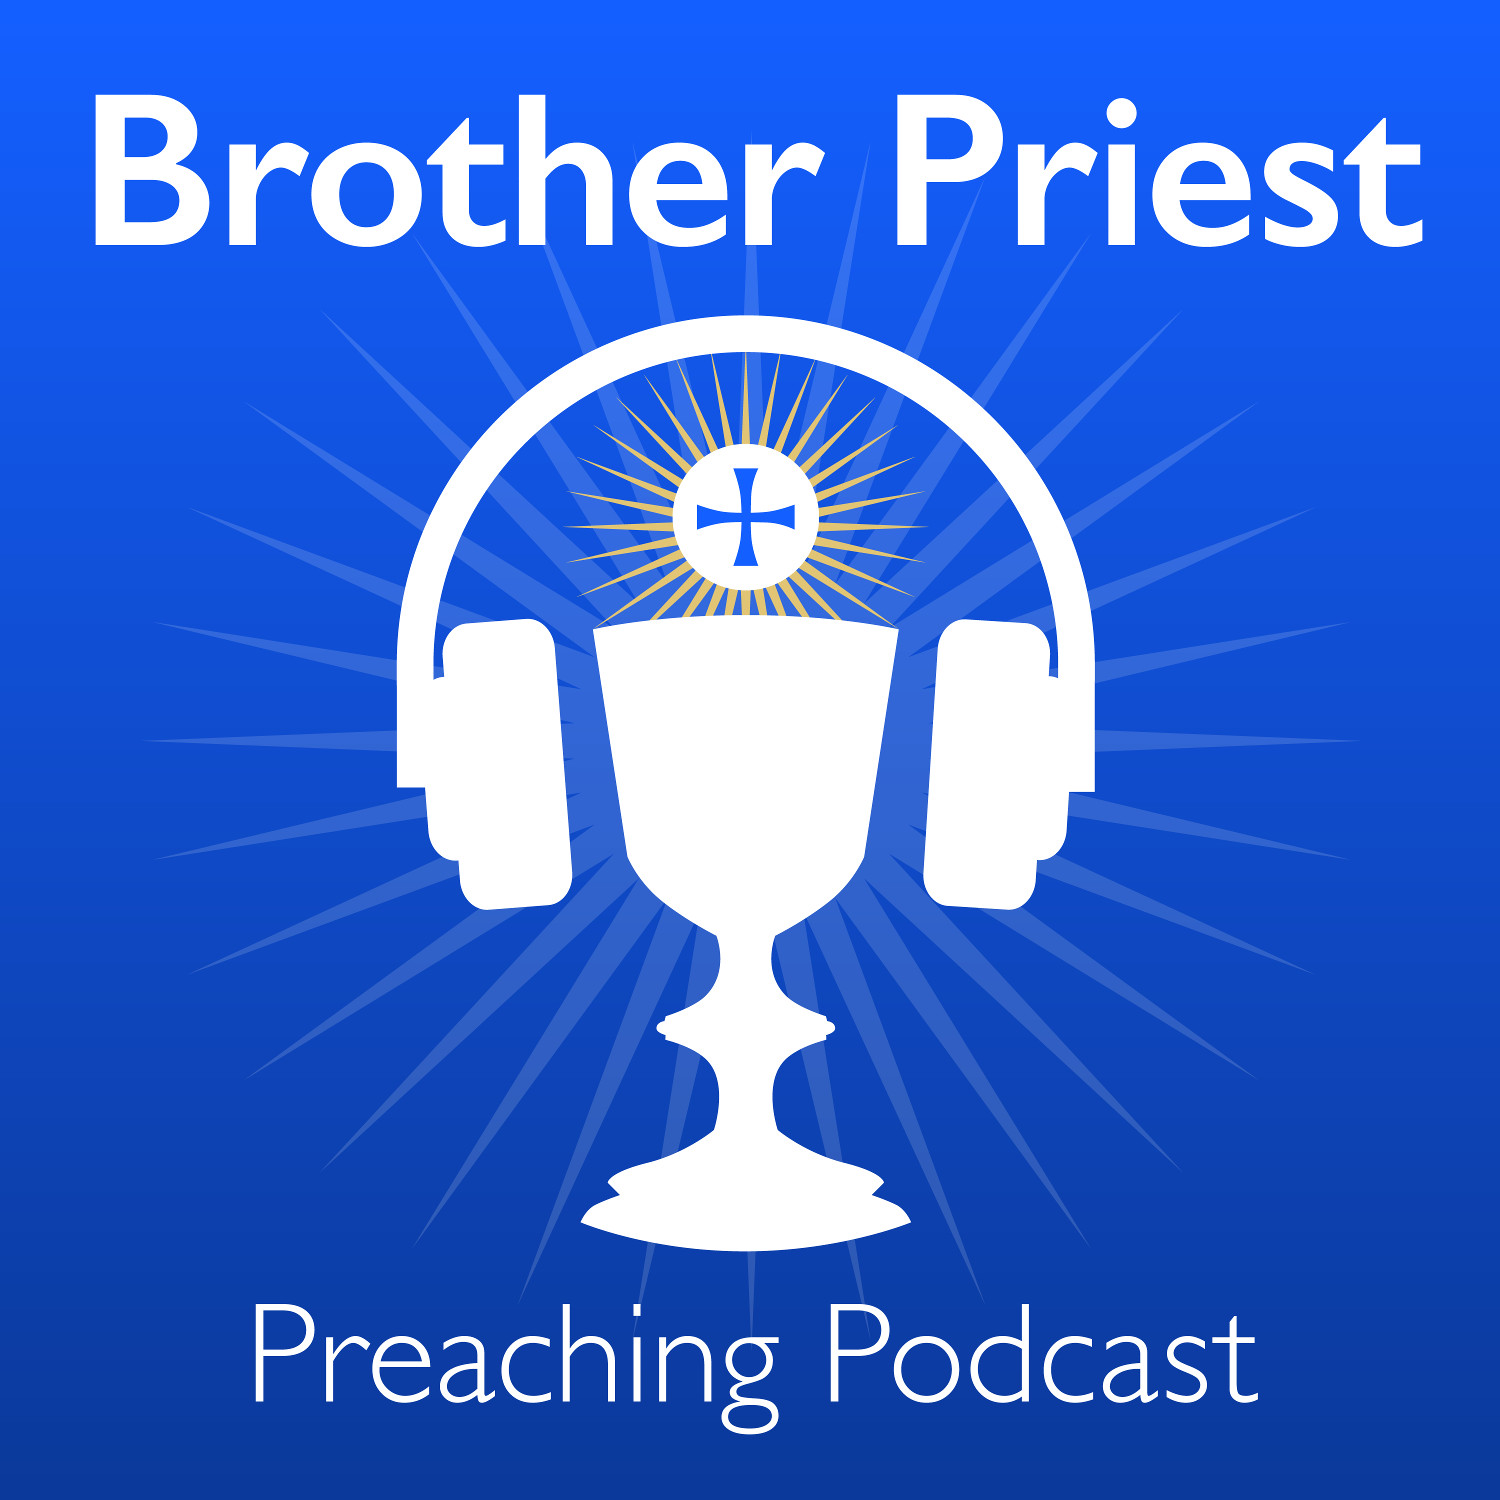 Brother Priest Preaching Podcast